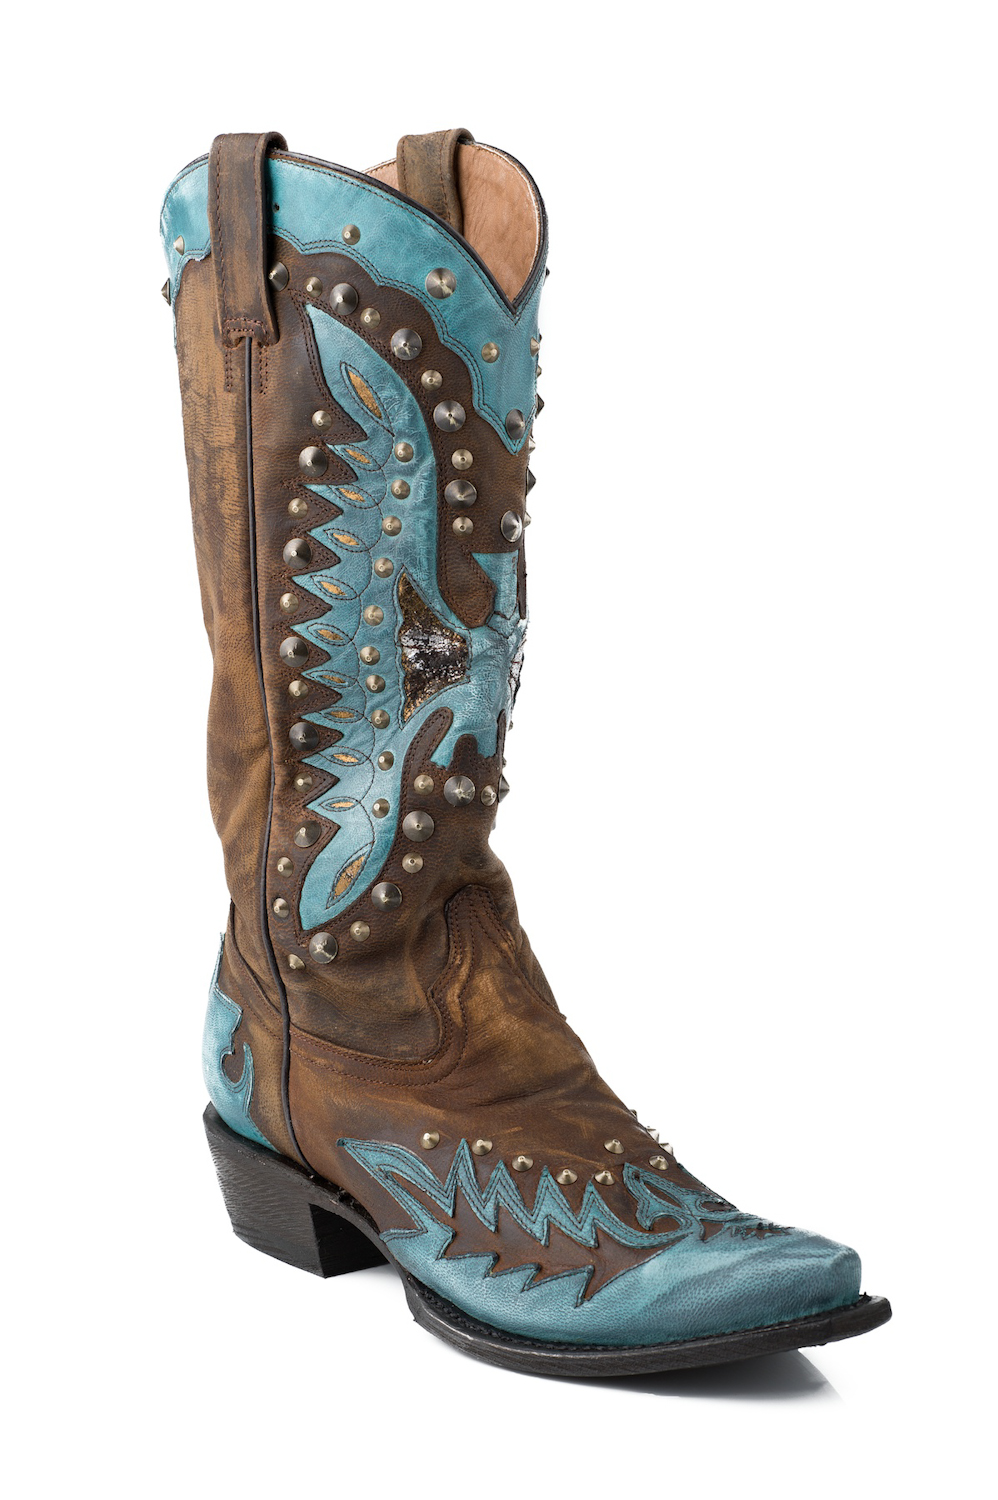 """Stetson Womens 13"""" Mad Dog Eagle Fashion Goat Skin Leather Western Cowboy Boots at Sears.com"""